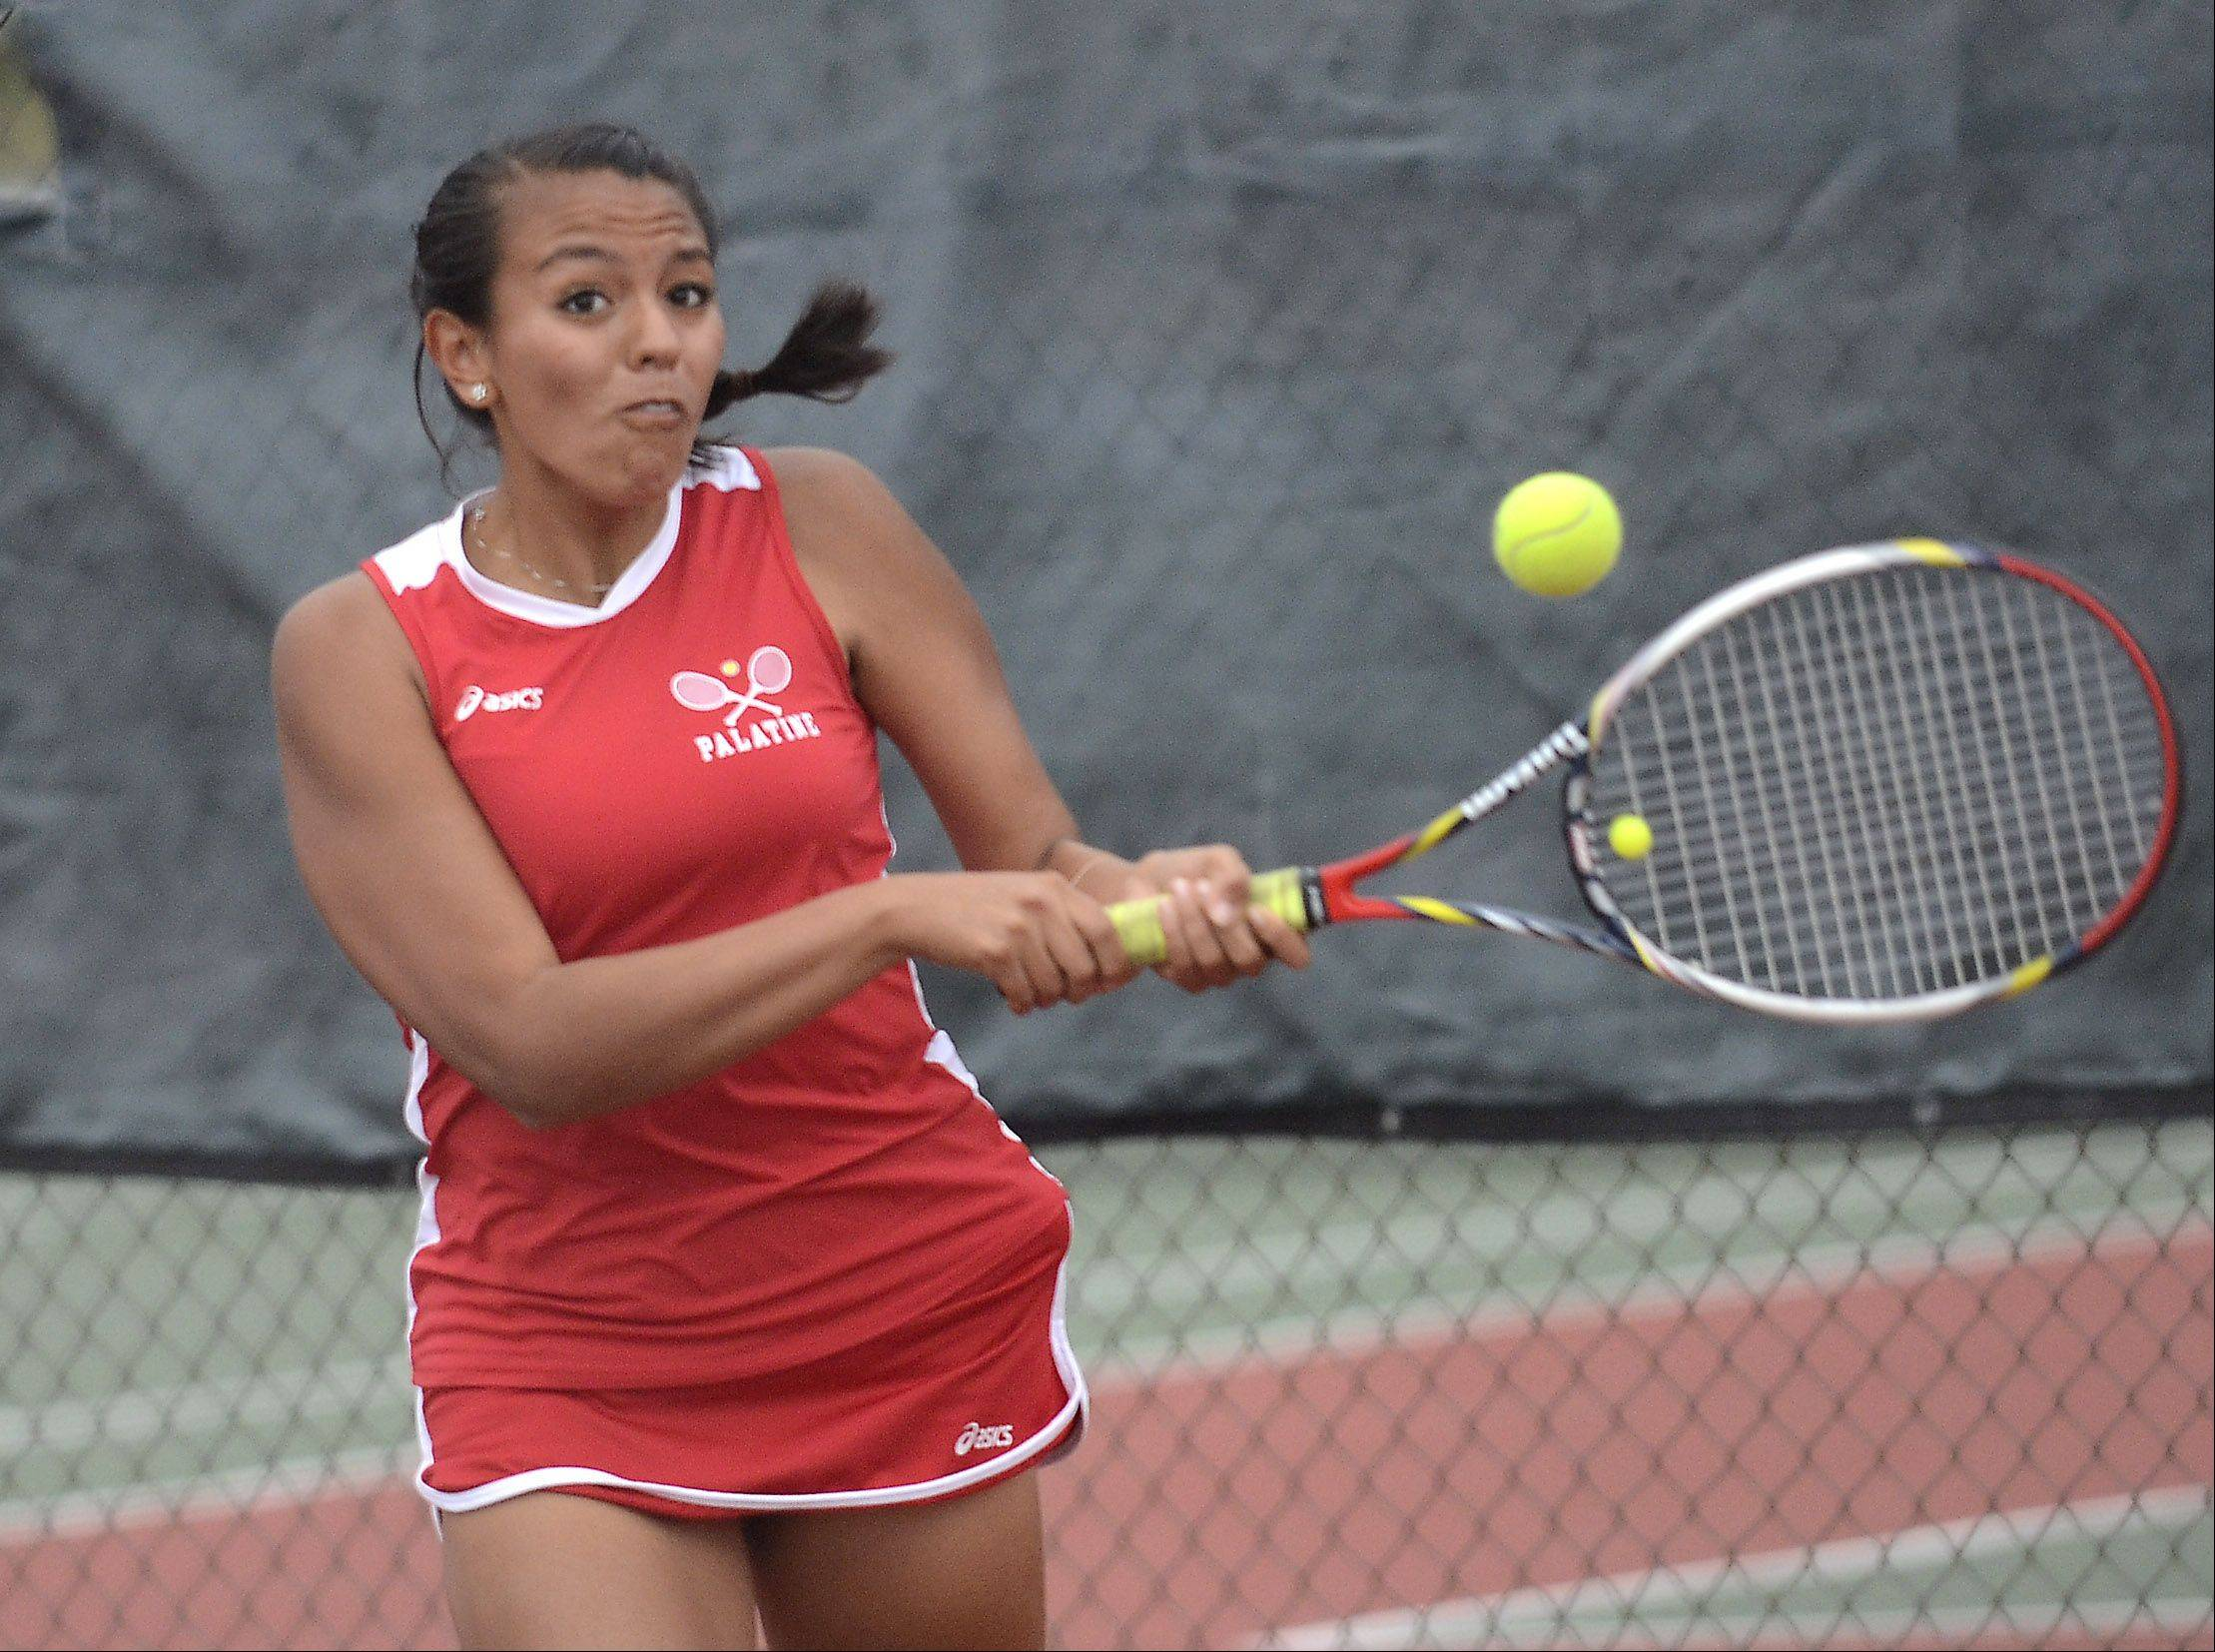 Palatine's Karla Robles plays St. Viator's Megan Balas in girls tennis action Monday in Palatine.